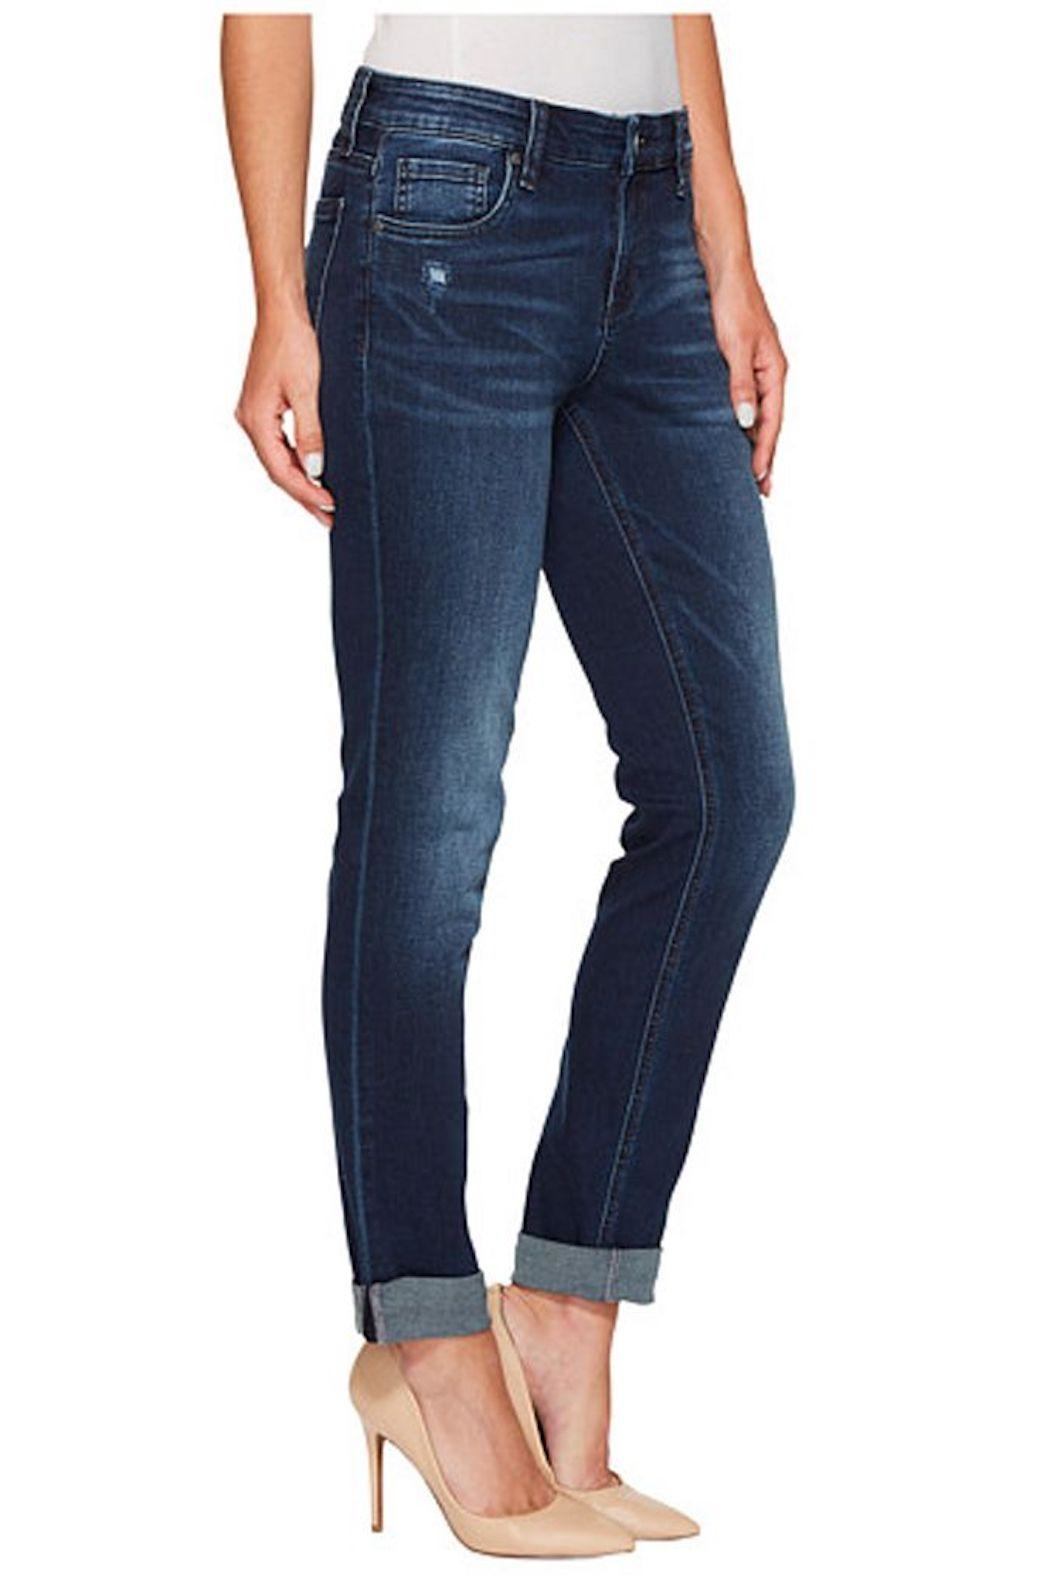 Kut from the Kloth Slouchy Boyfriend Jeans - Side Cropped Image